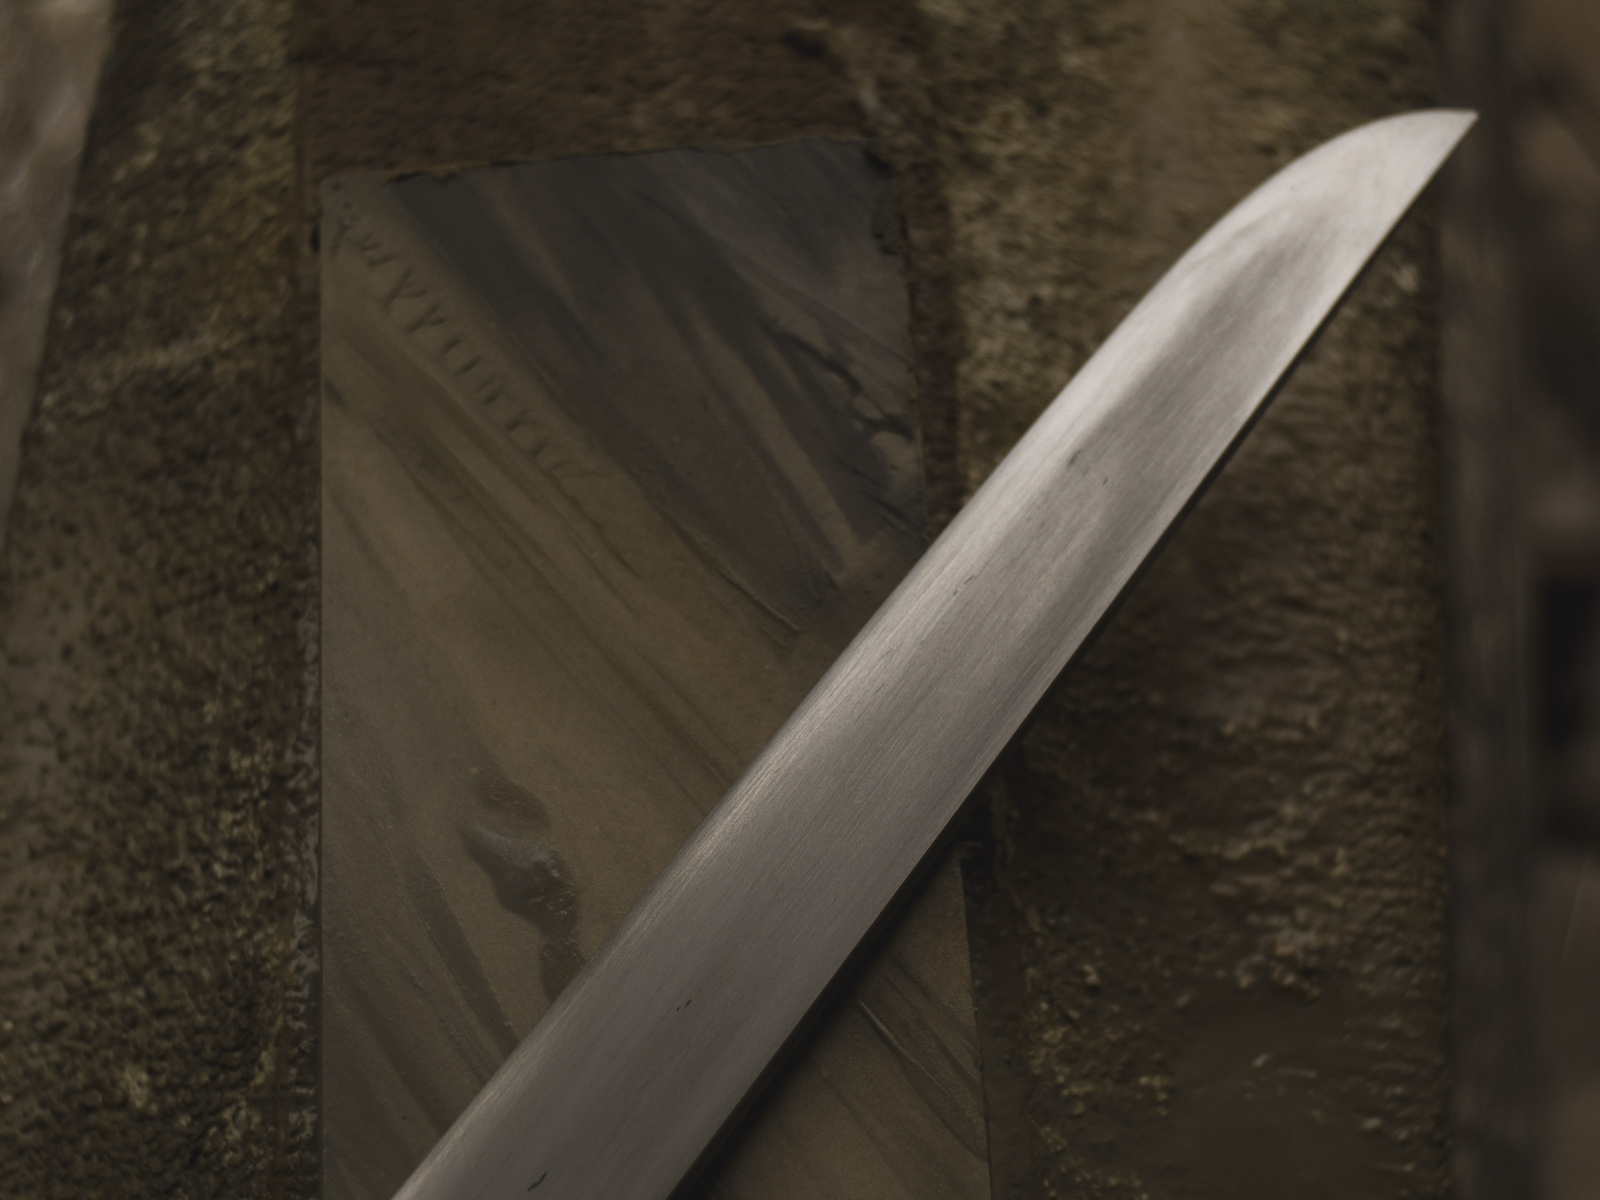 Island Blacksmith: Hand forged yoroidoshi tanto, made from reclaimed and natural materials using traditional techniques